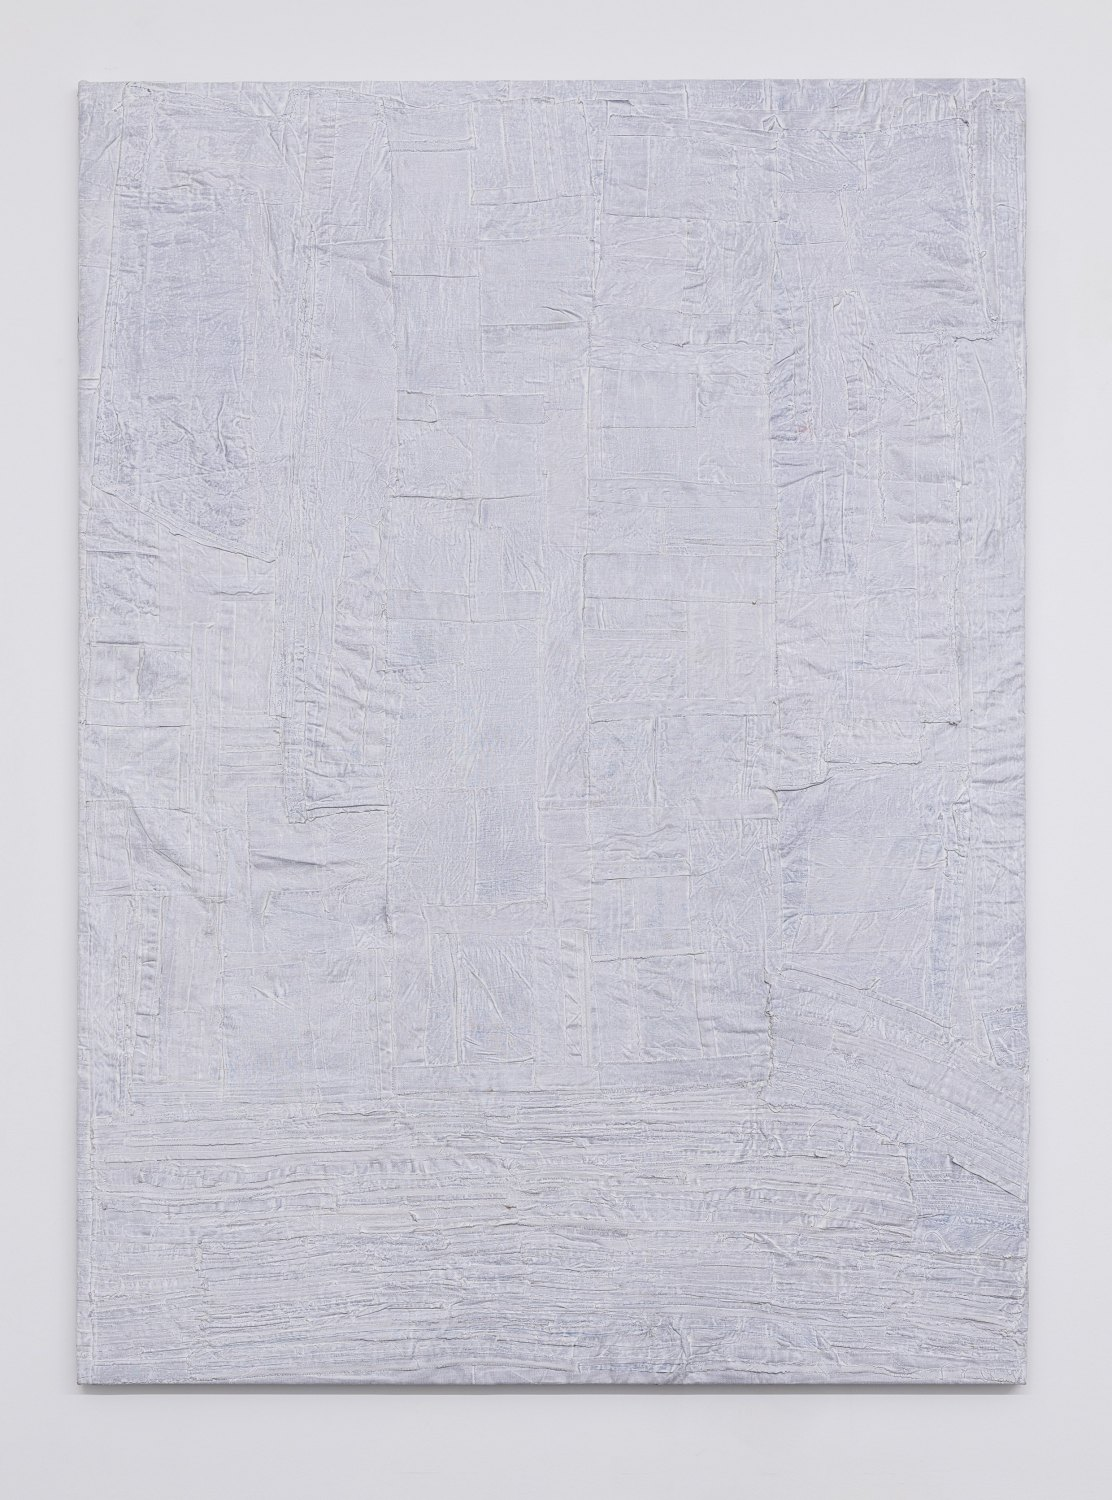 Sergej Jensen Internal Deformation, 2017 Acrylic on sewn linen, 241 x 175 x 4 cm